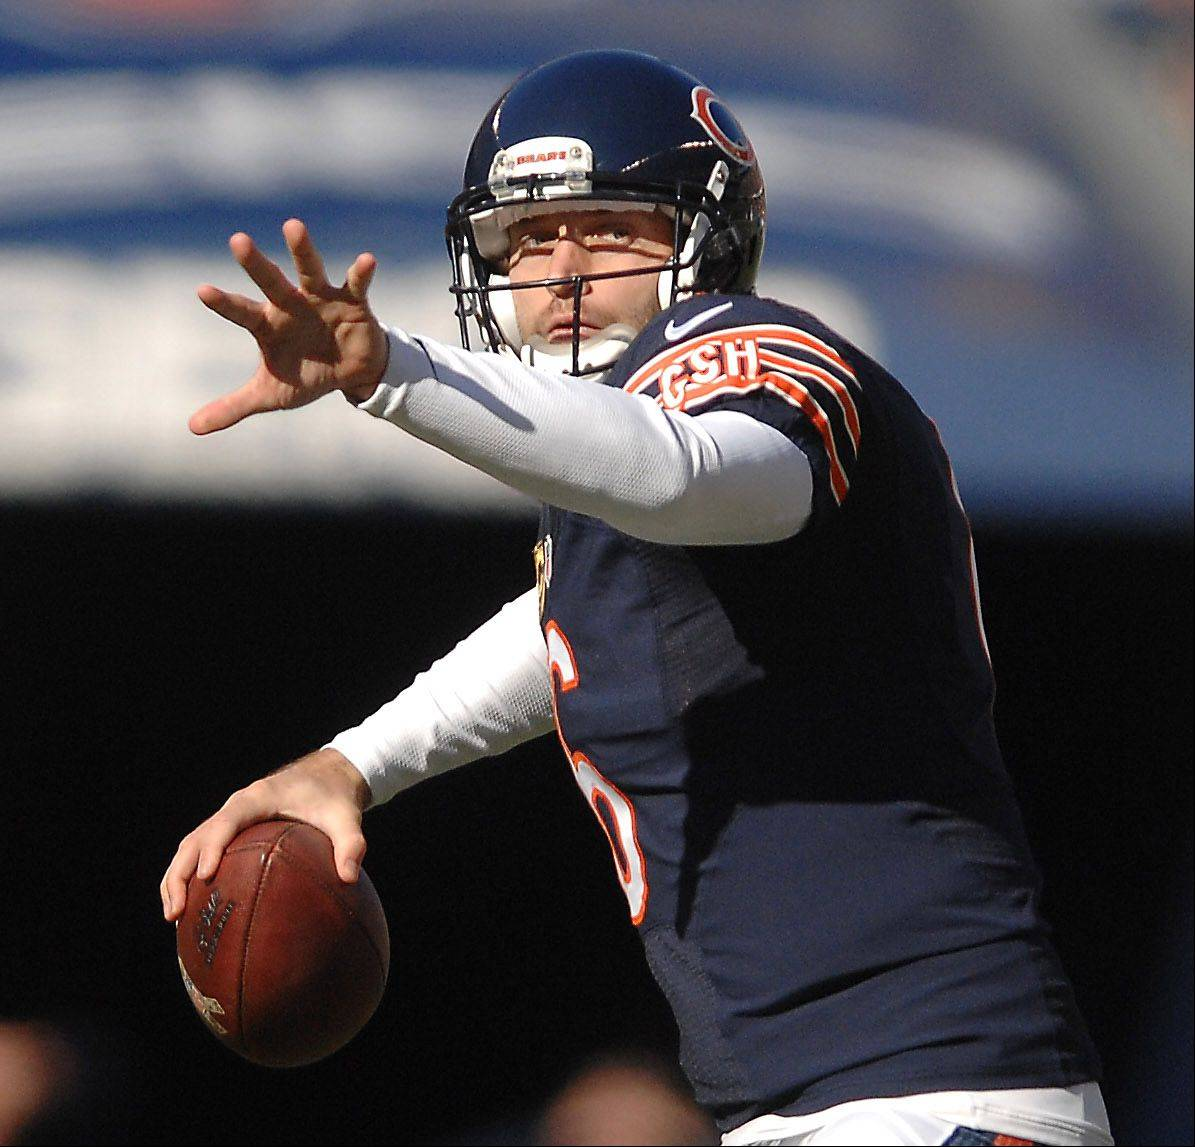 Chicago Bears quarterback Jay Cutler has signed a 7-year deal to stay with the Bears, GM Phil Emery announced Thursday.